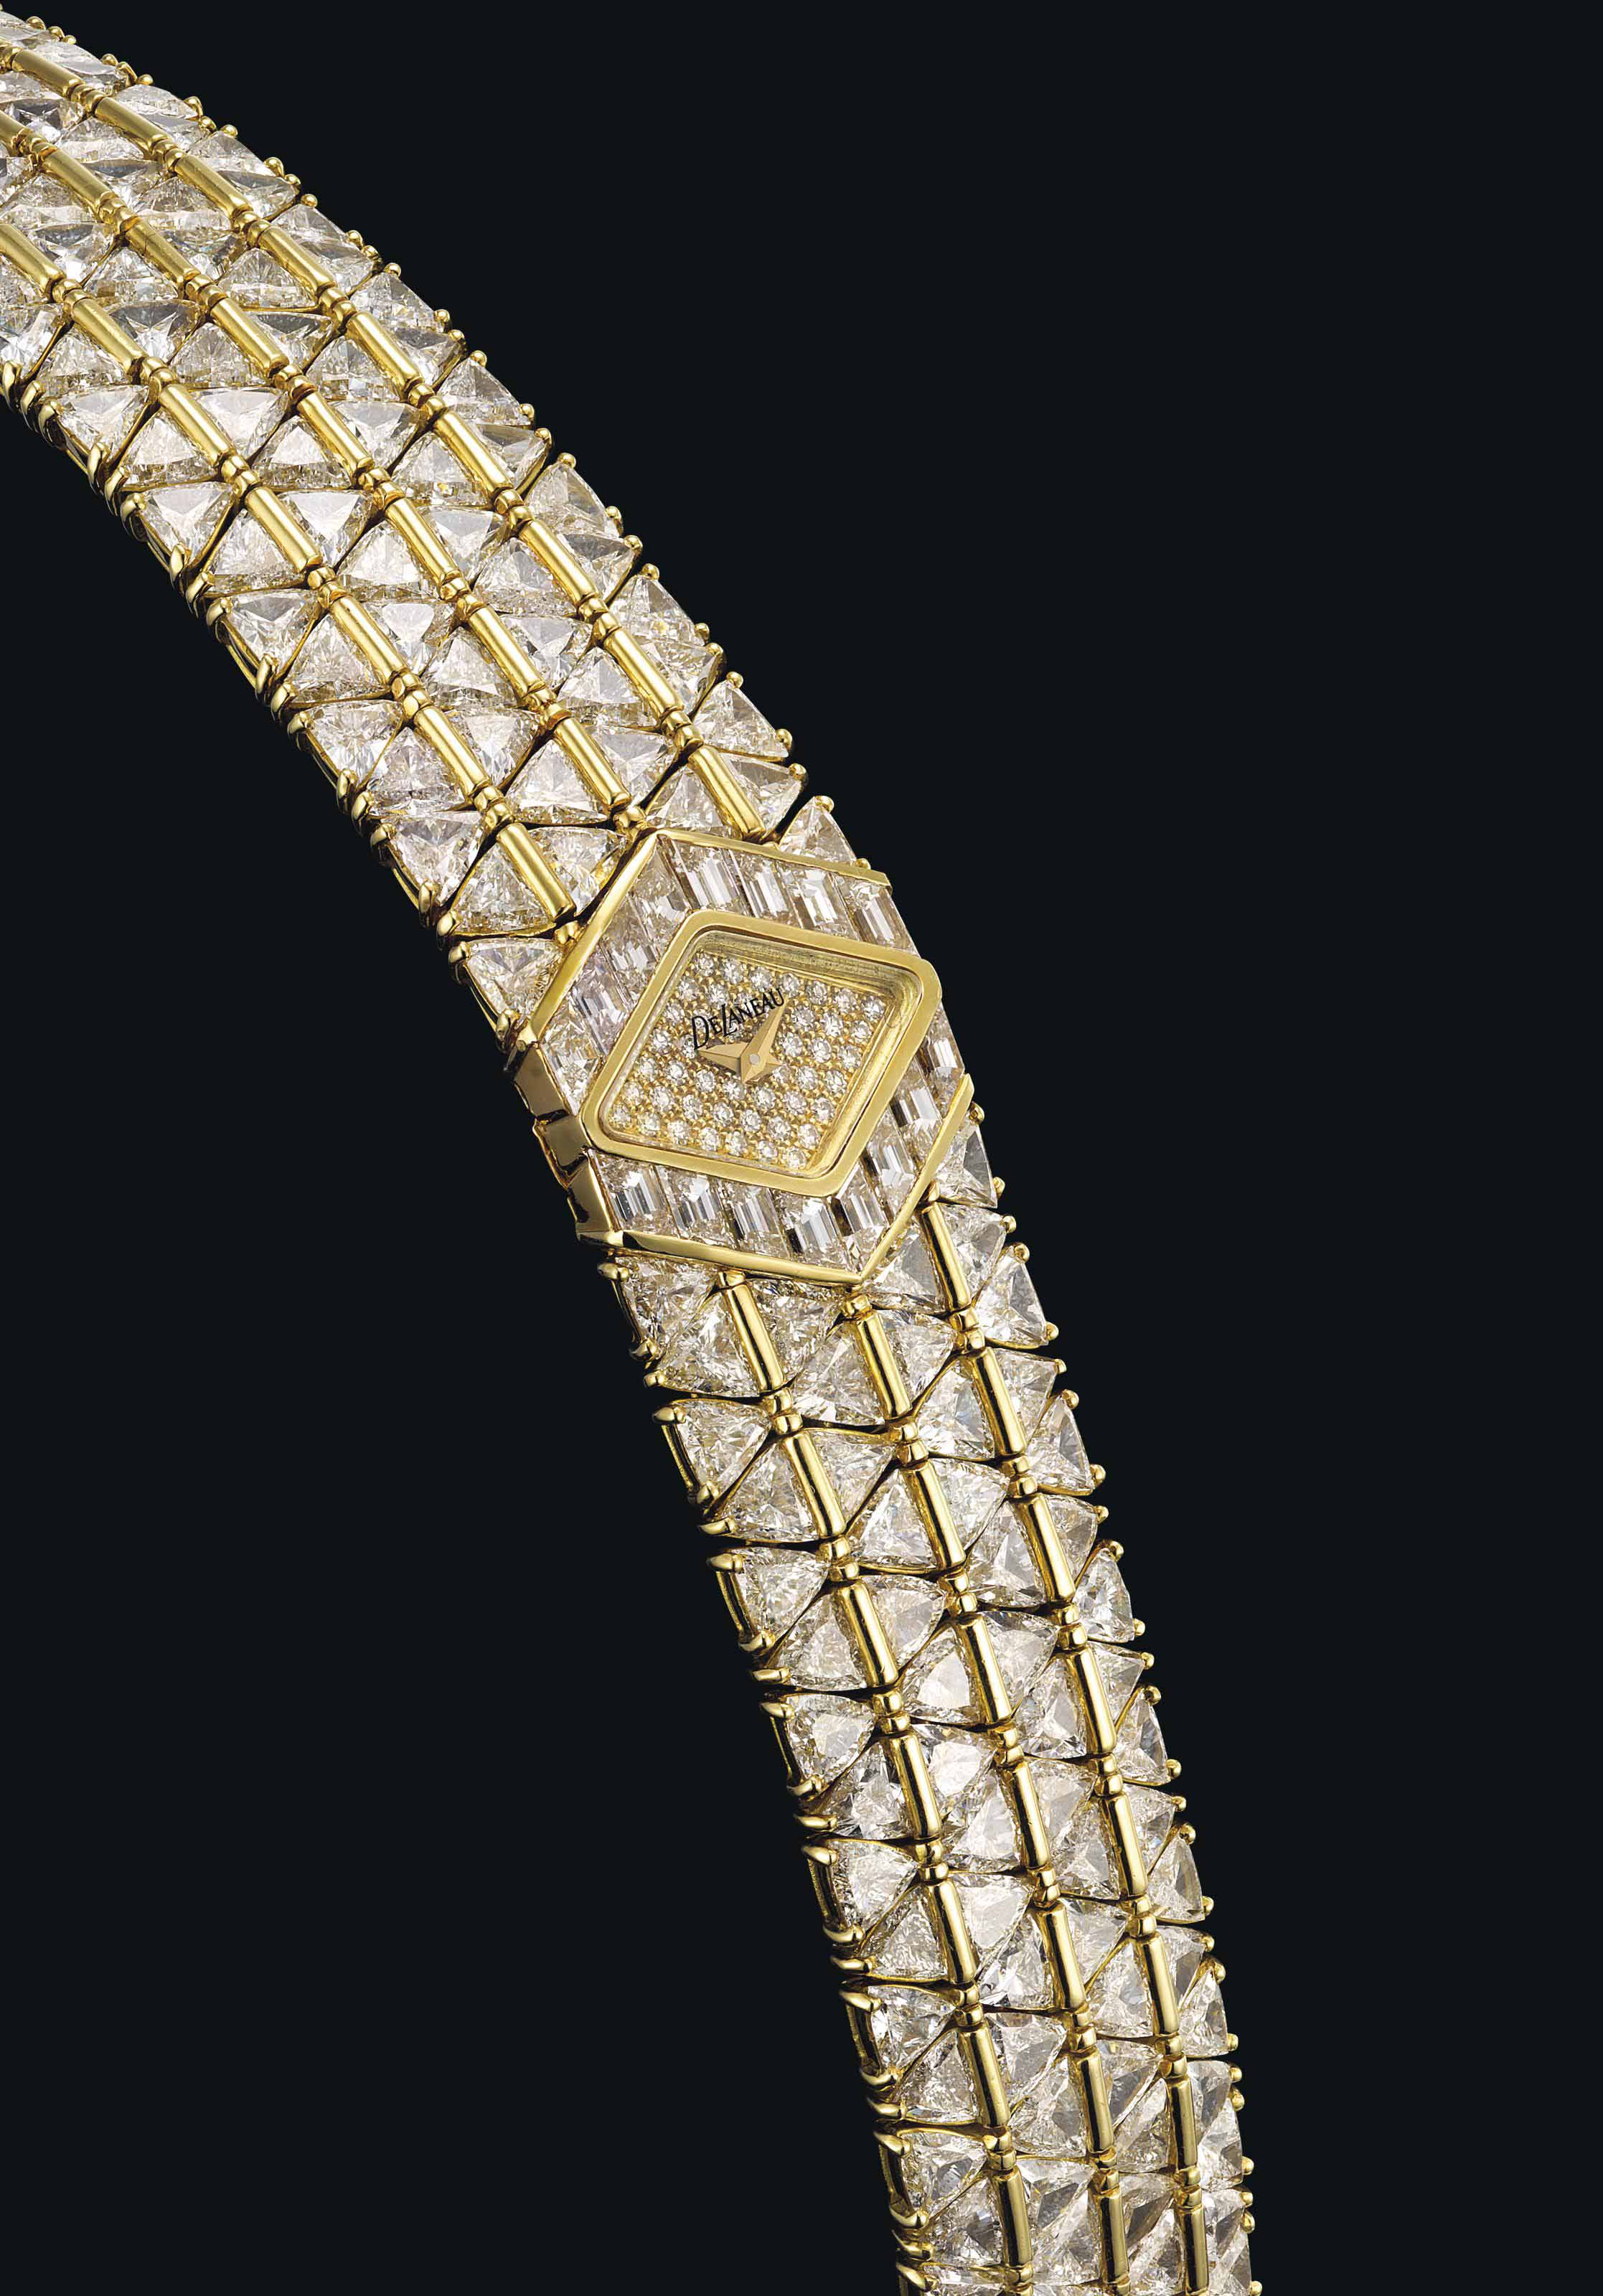 DELANEAU. A LADY'S FINE 18K GOLD AND DIAMOND-SET LOZENGE-SHAPED BRACELET WATCH